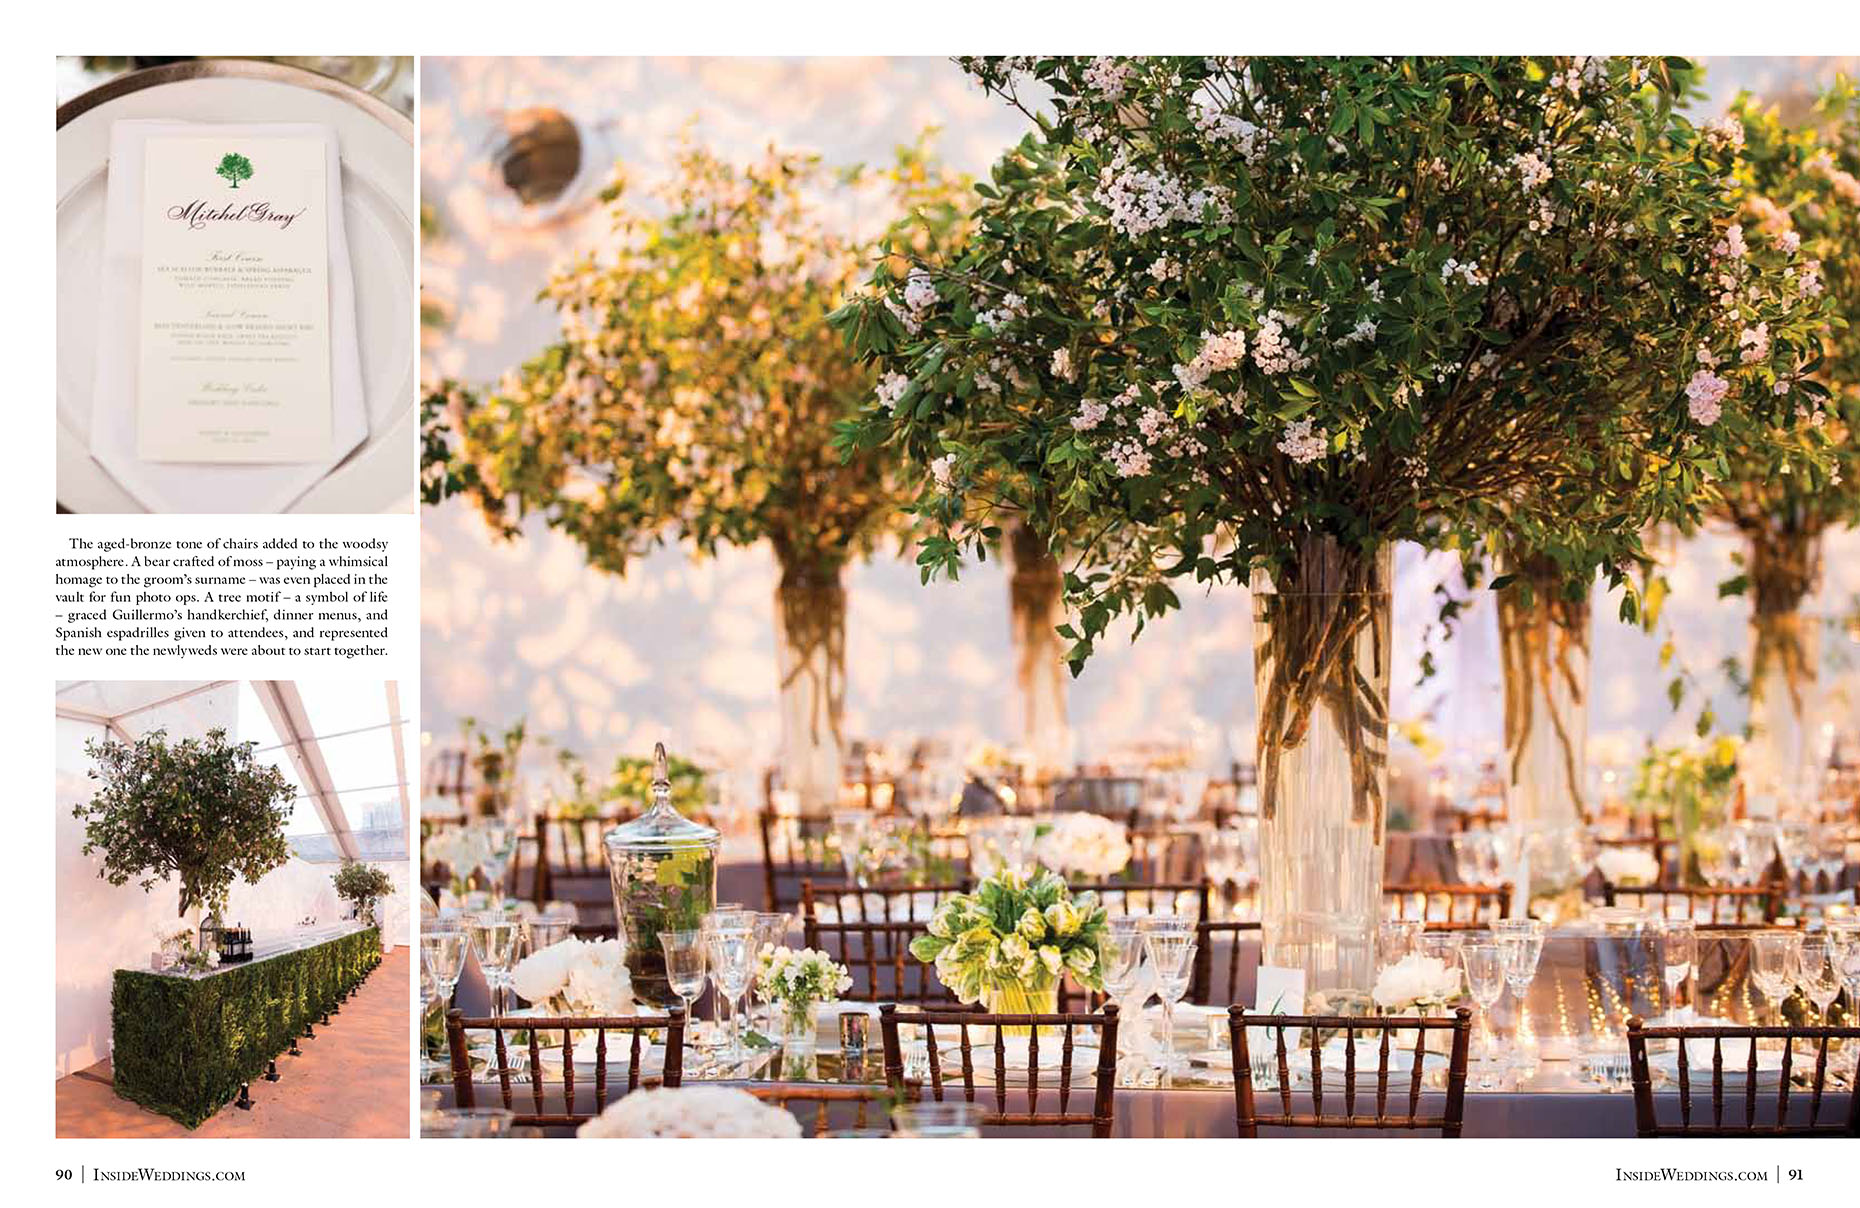 113_InsideWeddings_spread4_summer2015